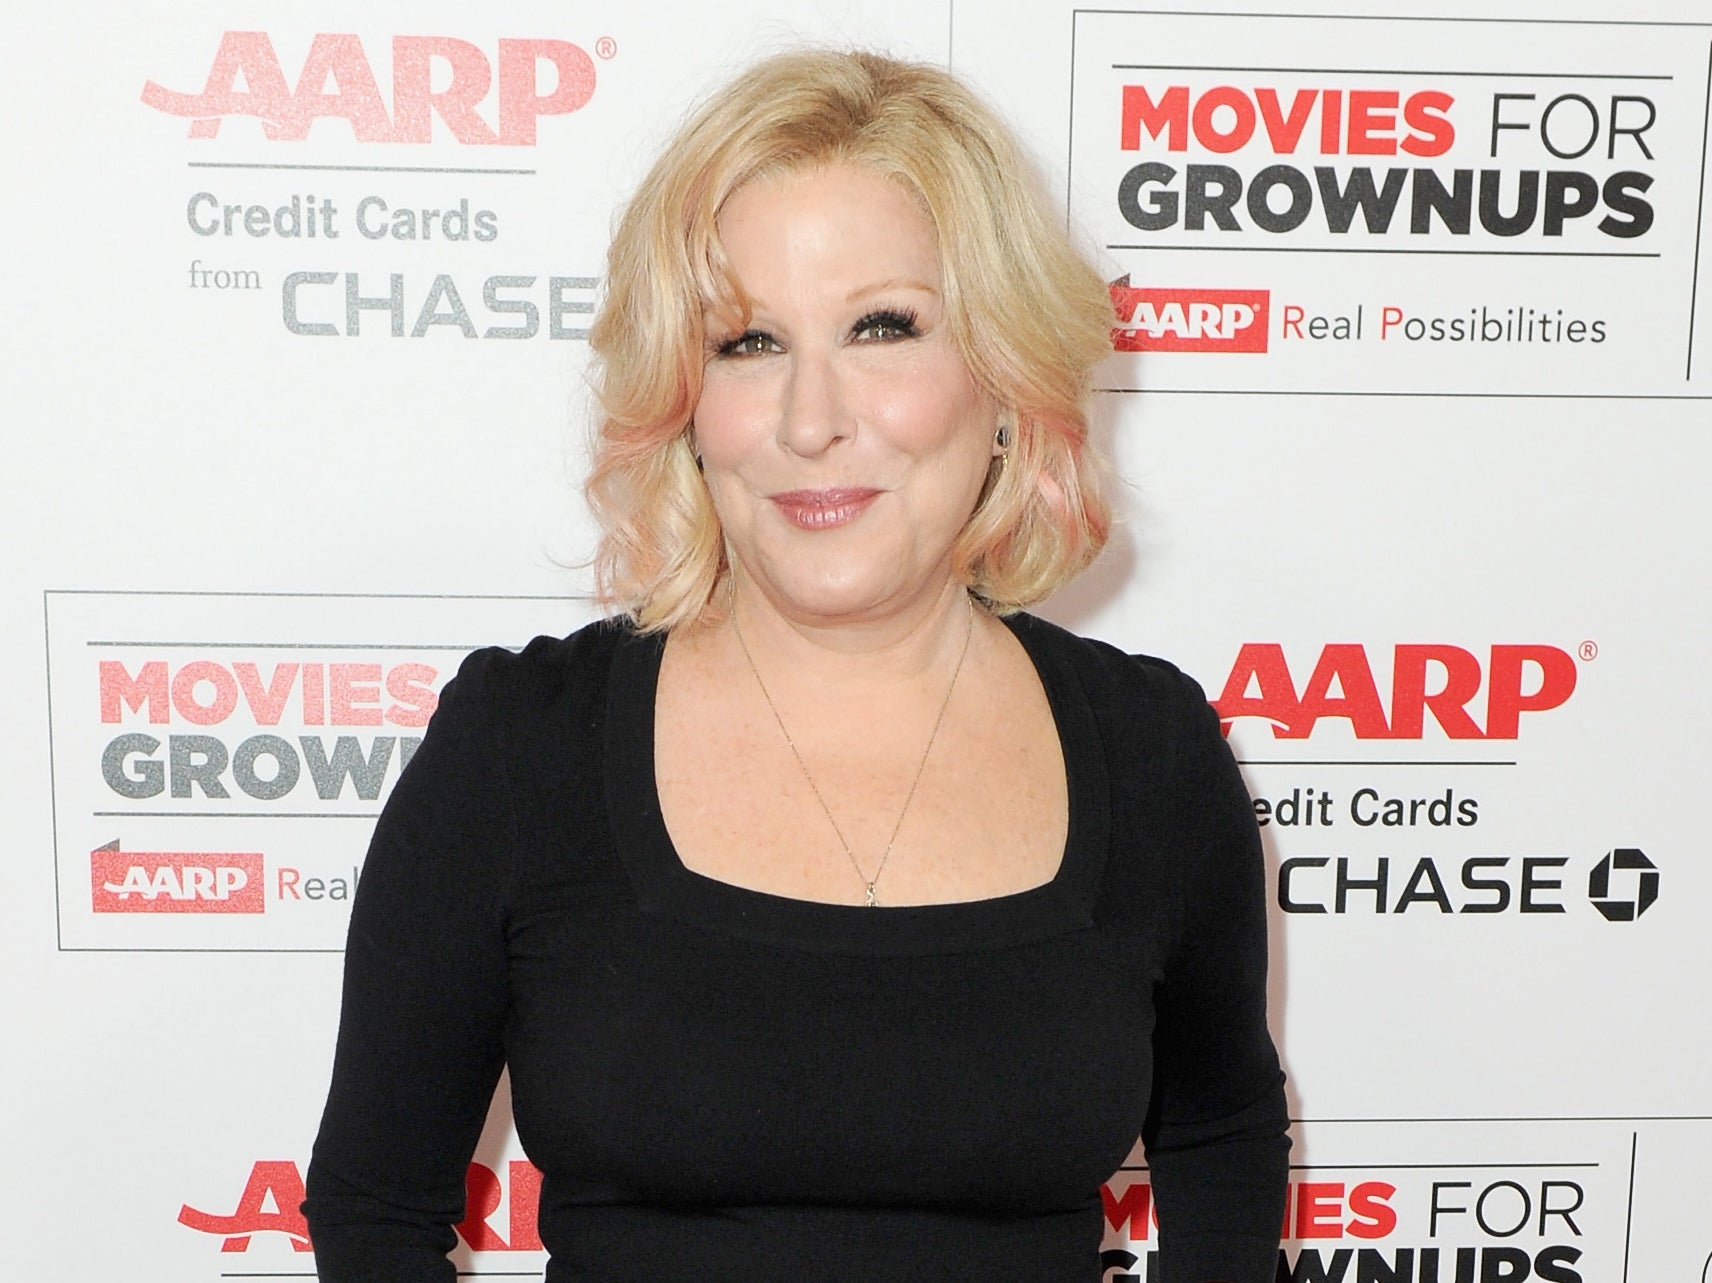 Bette Midler accuses Fox News host Geraldo Rivera of sexual misconduct and demands apology